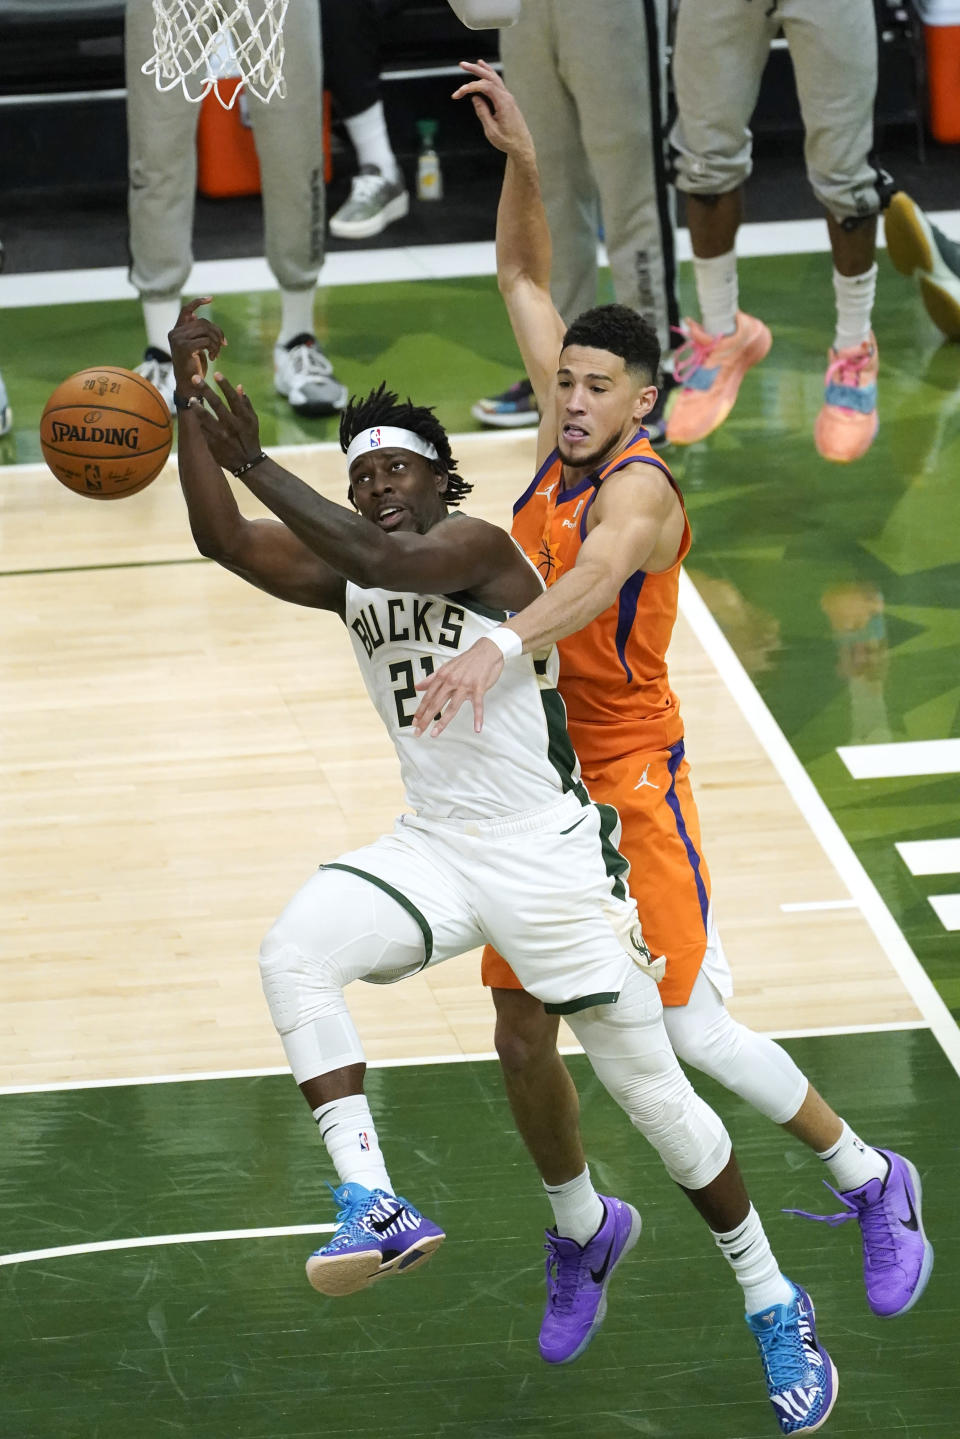 Milwaukee Bucks guard Jrue Holiday (21) fights for a rebound with Phoenix Suns guard Devin Booker, right, during the second half of Game 4 of basketball's NBA Finals in Milwaukee, Wednesday, July 14, 2021. (AP Photo/Paul Sancya)